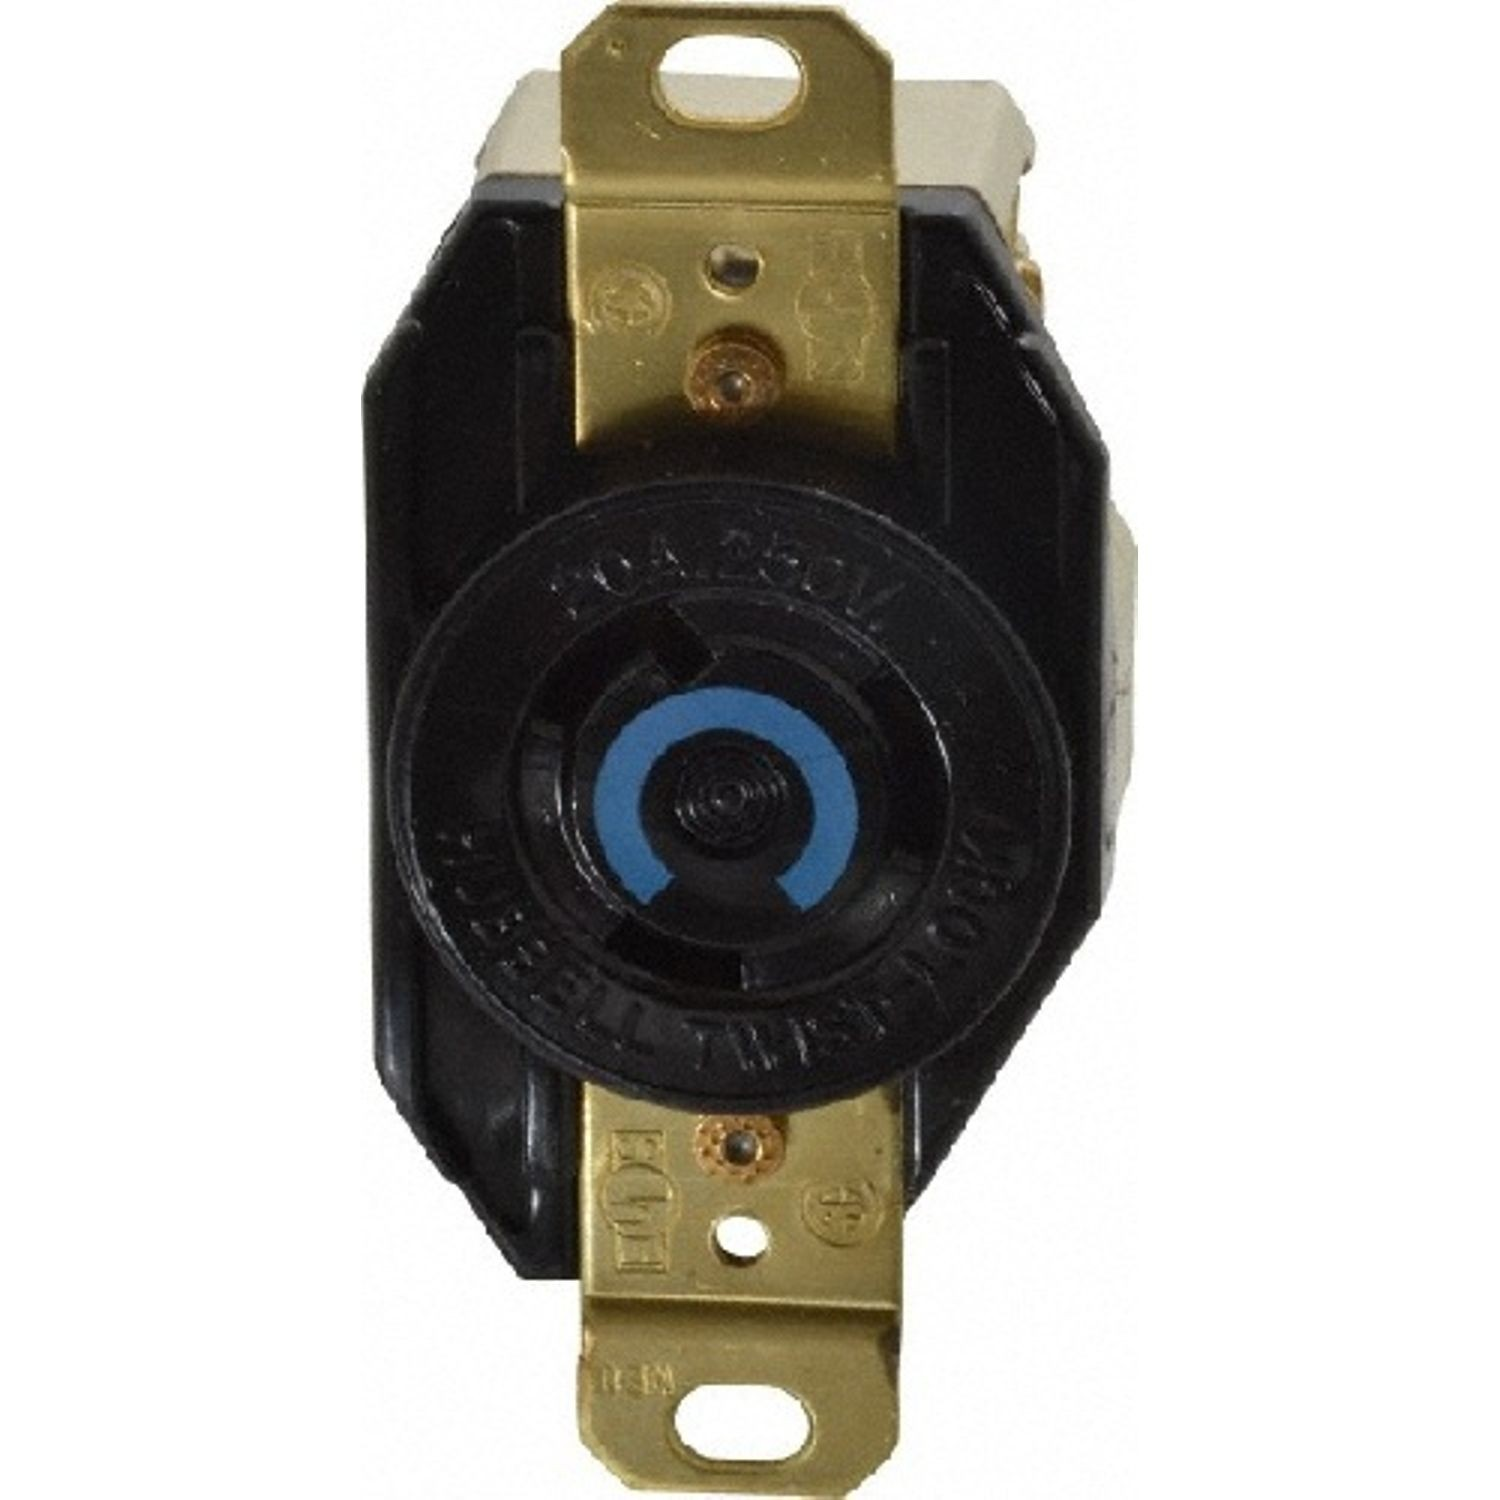 hight resolution of hubbell twist lock receptacle 2 pole 3 wire 20 ampere 250 volts nema l6 20r black state electric